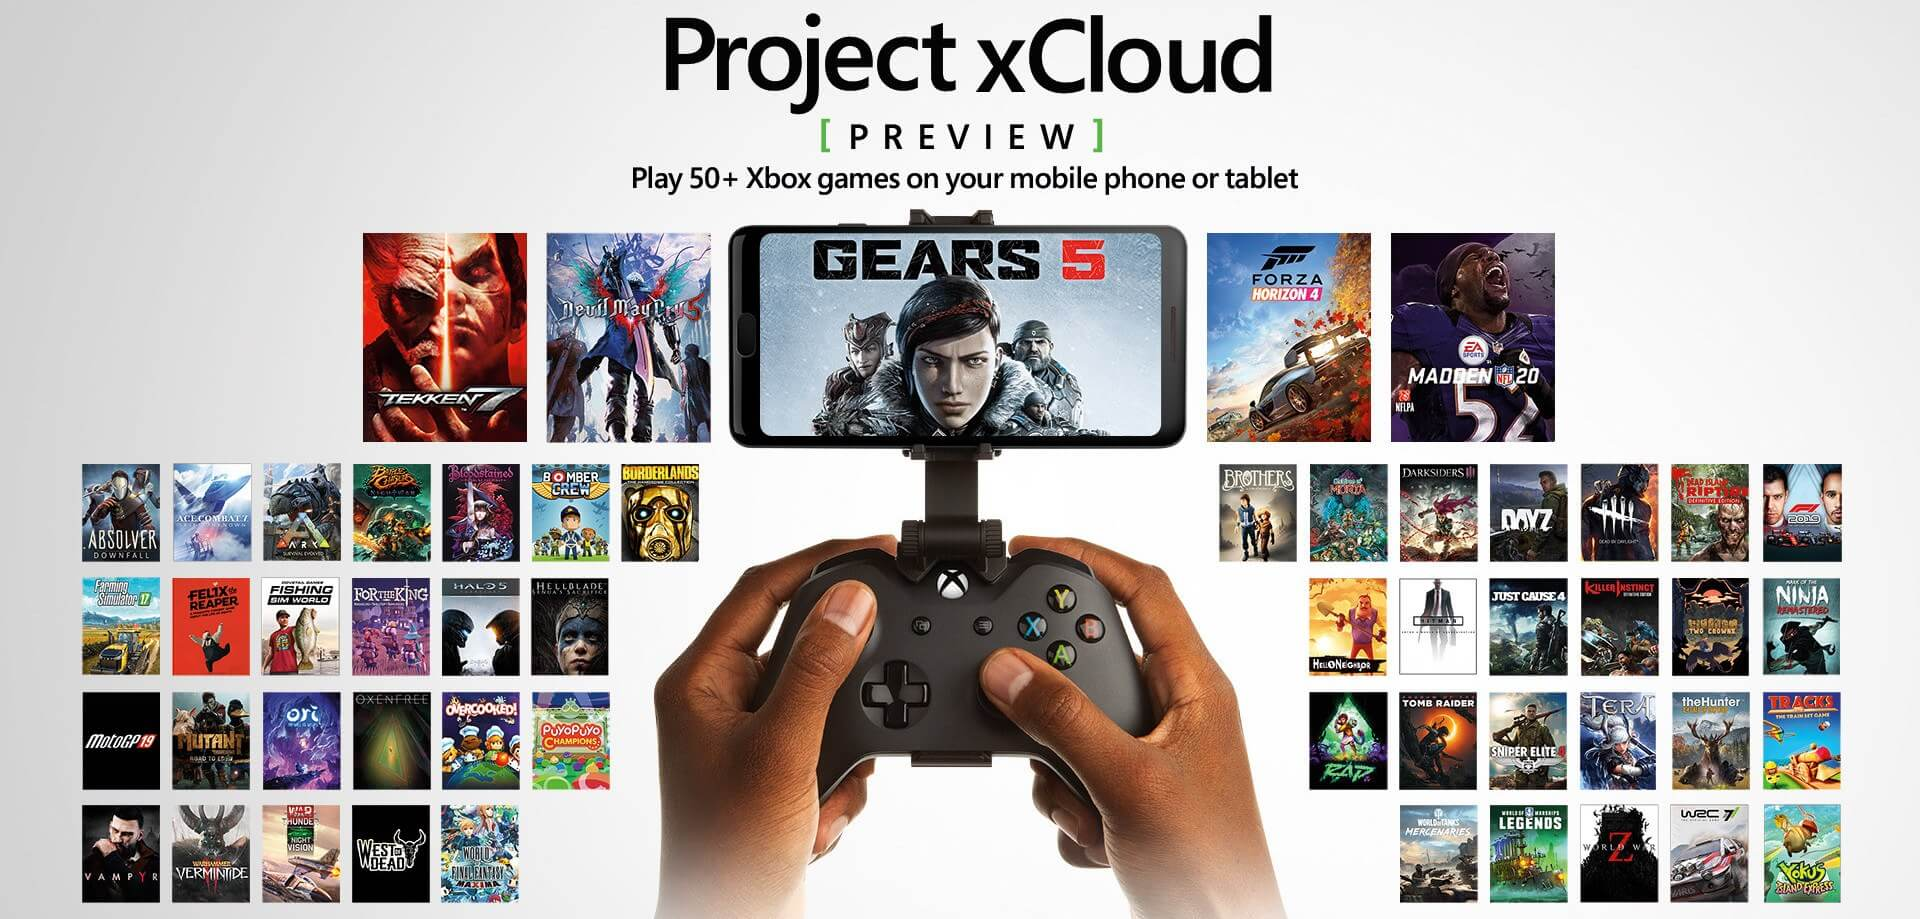 2020 Games.Microsoft Xcloud Preview Adds 50 Games And Shoots For A 2020